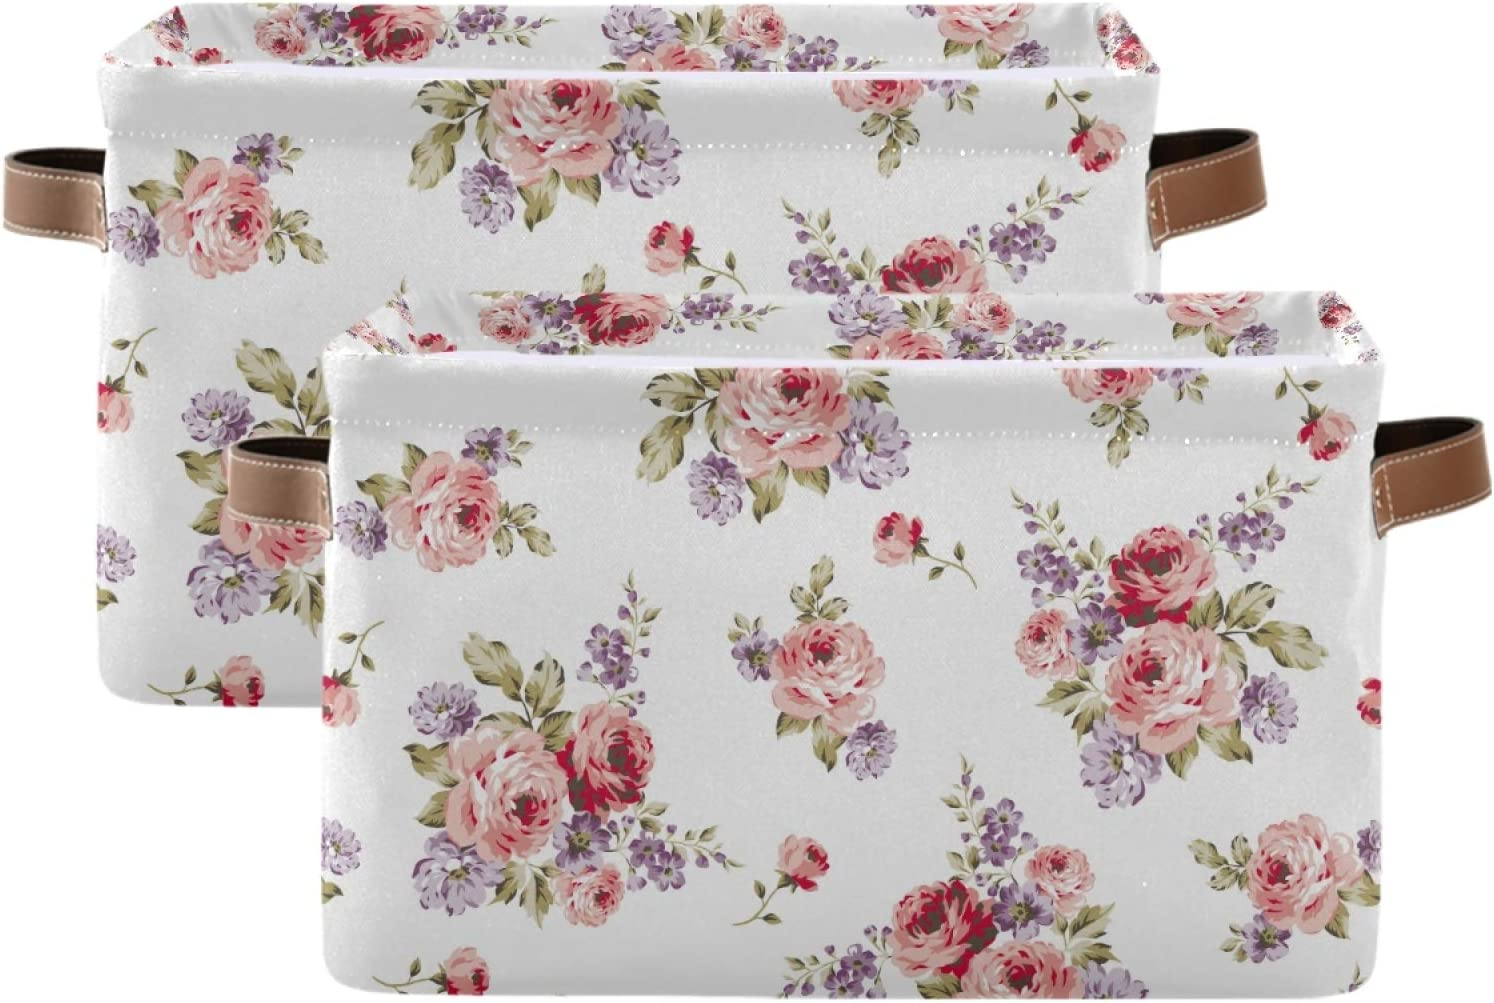 ALAZA Rectangular Foldable Don't miss the campaign Cheap mail order specialty store Storage Bin Rose Pink Flower Vintage